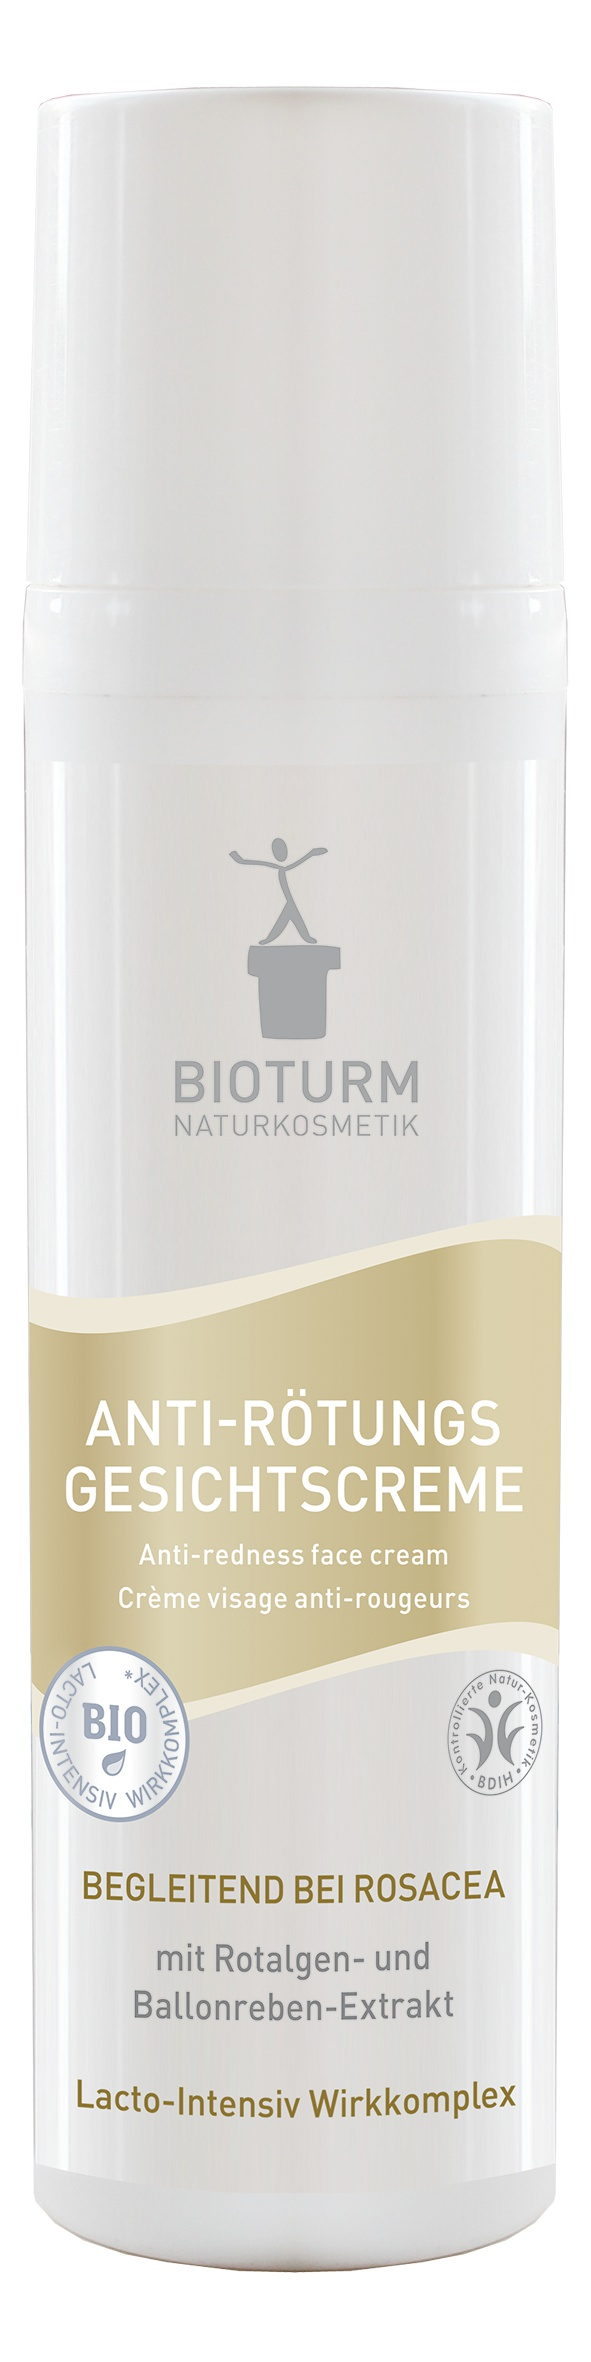 Bioturm Naturkosmetik Anti-Redness Face Cream No.48